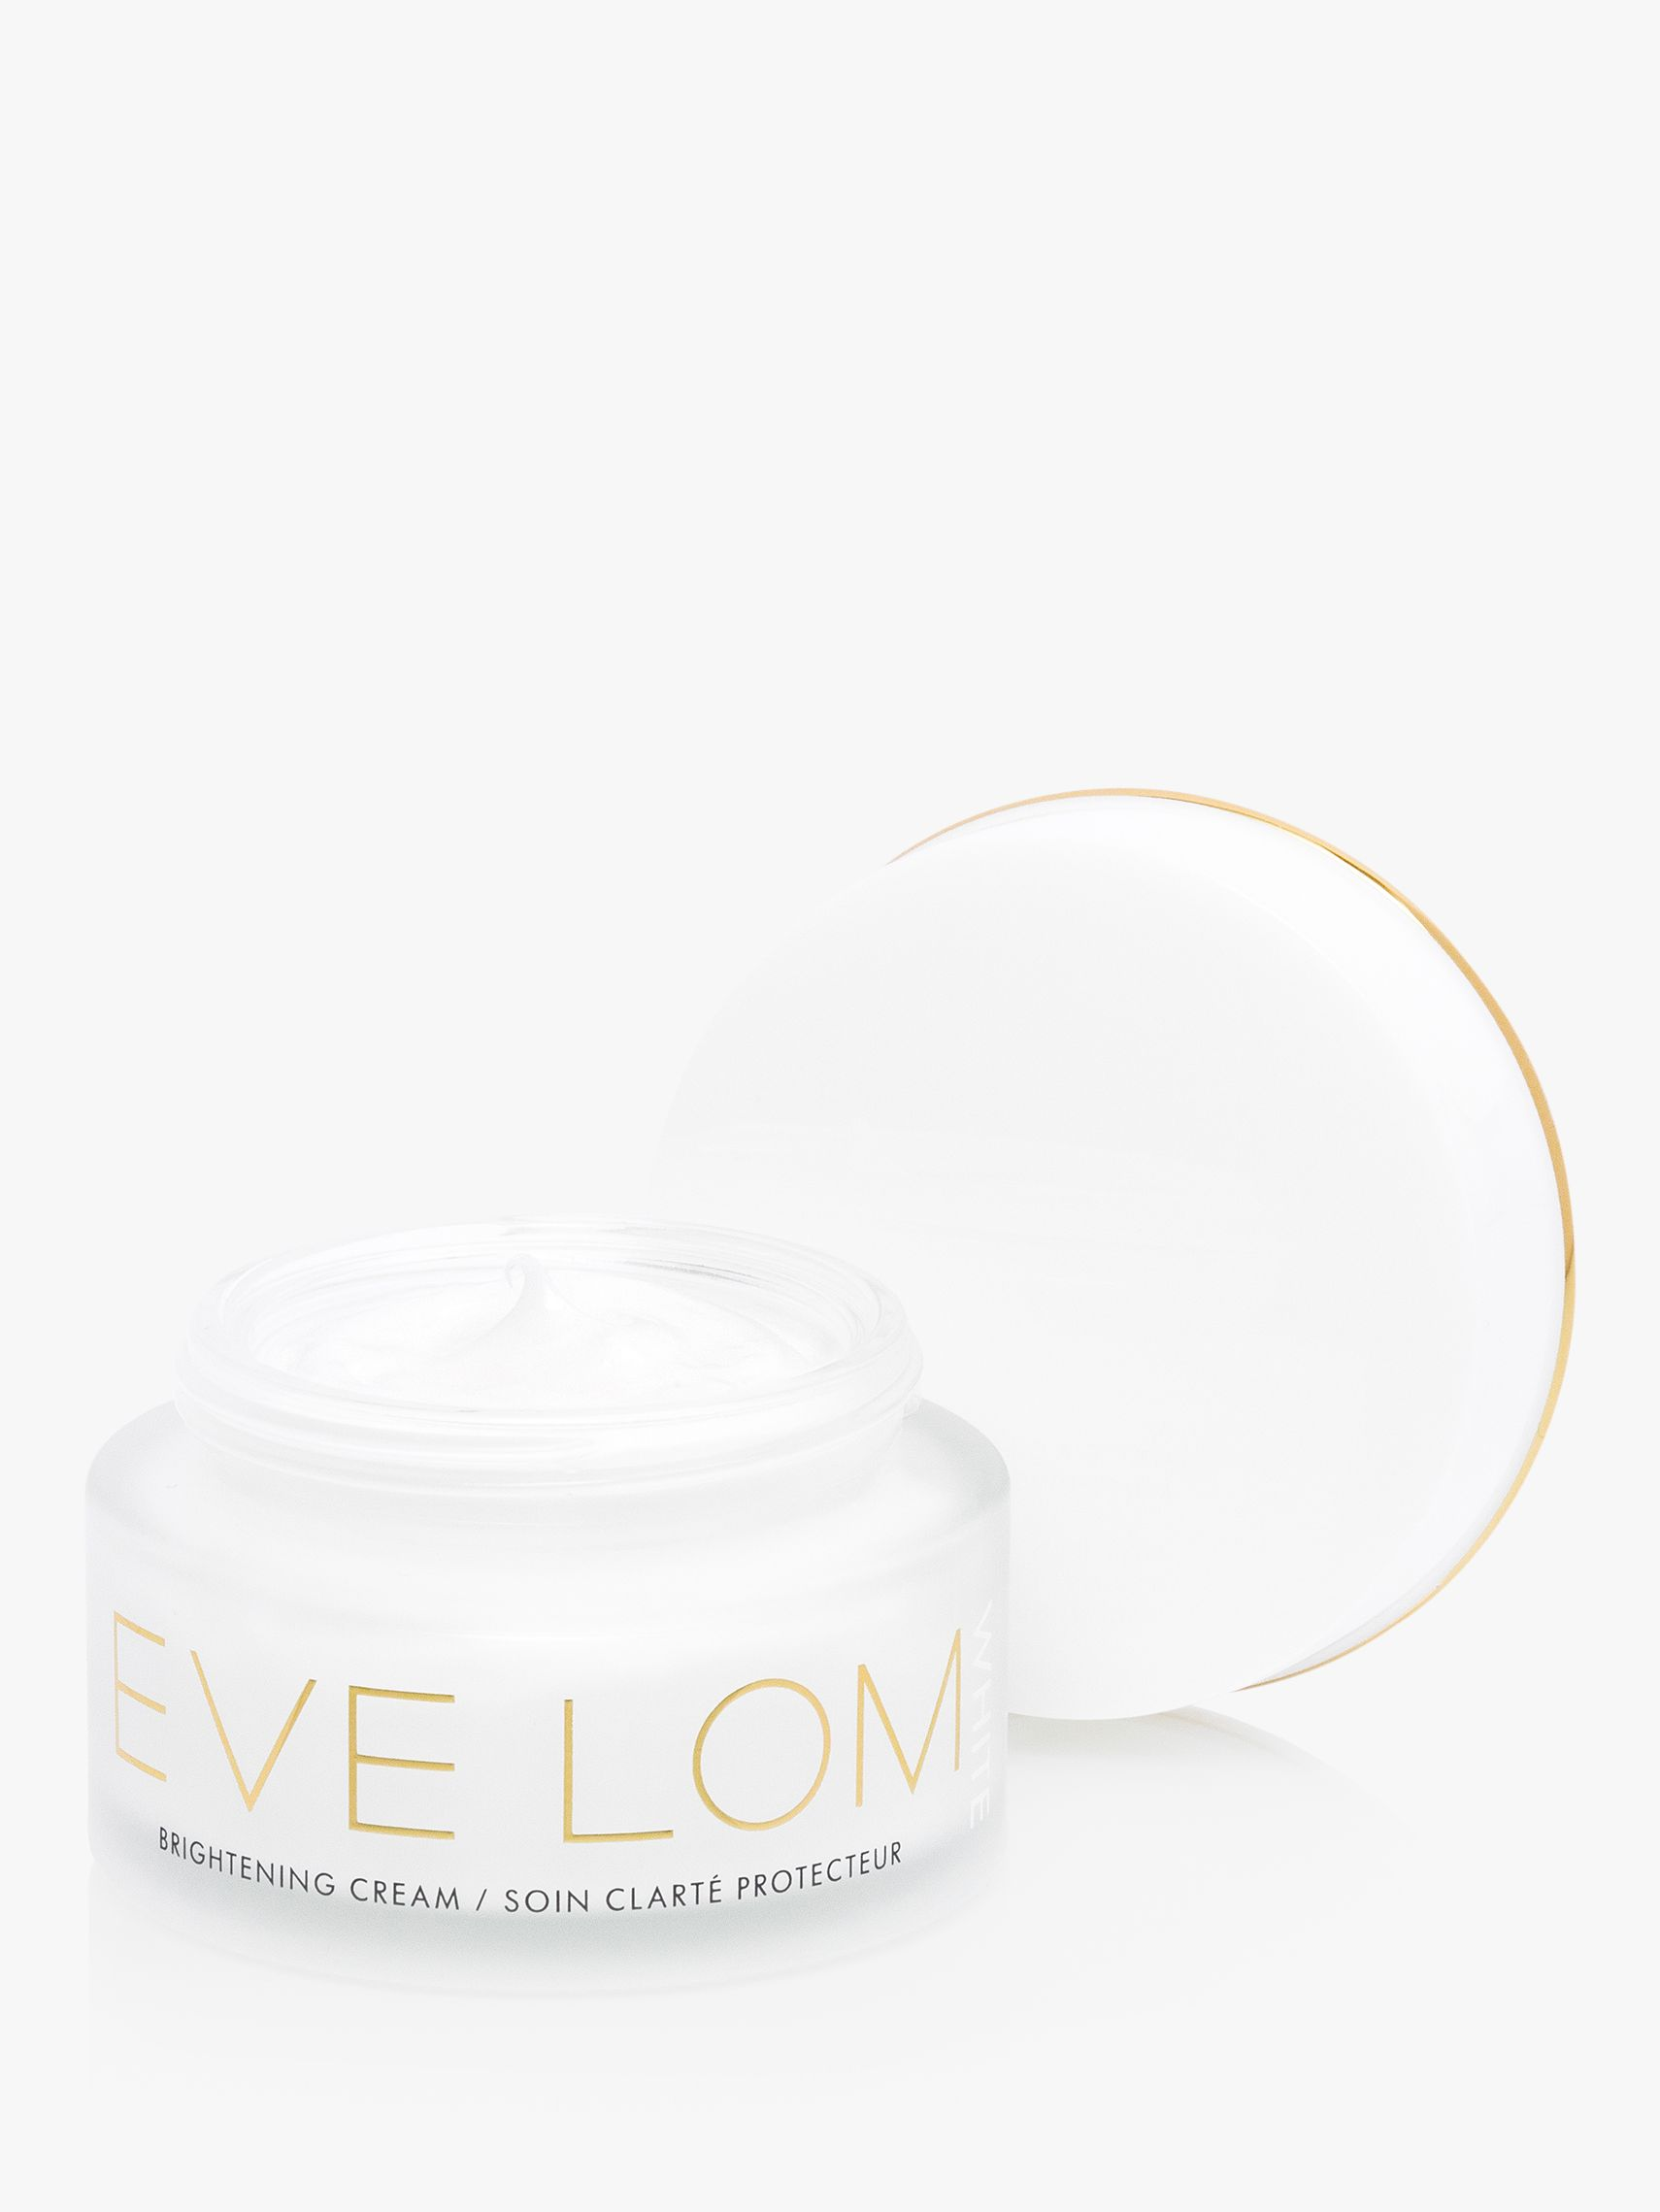 Eve Lom Eve Lom Brightening Cream, 50ml